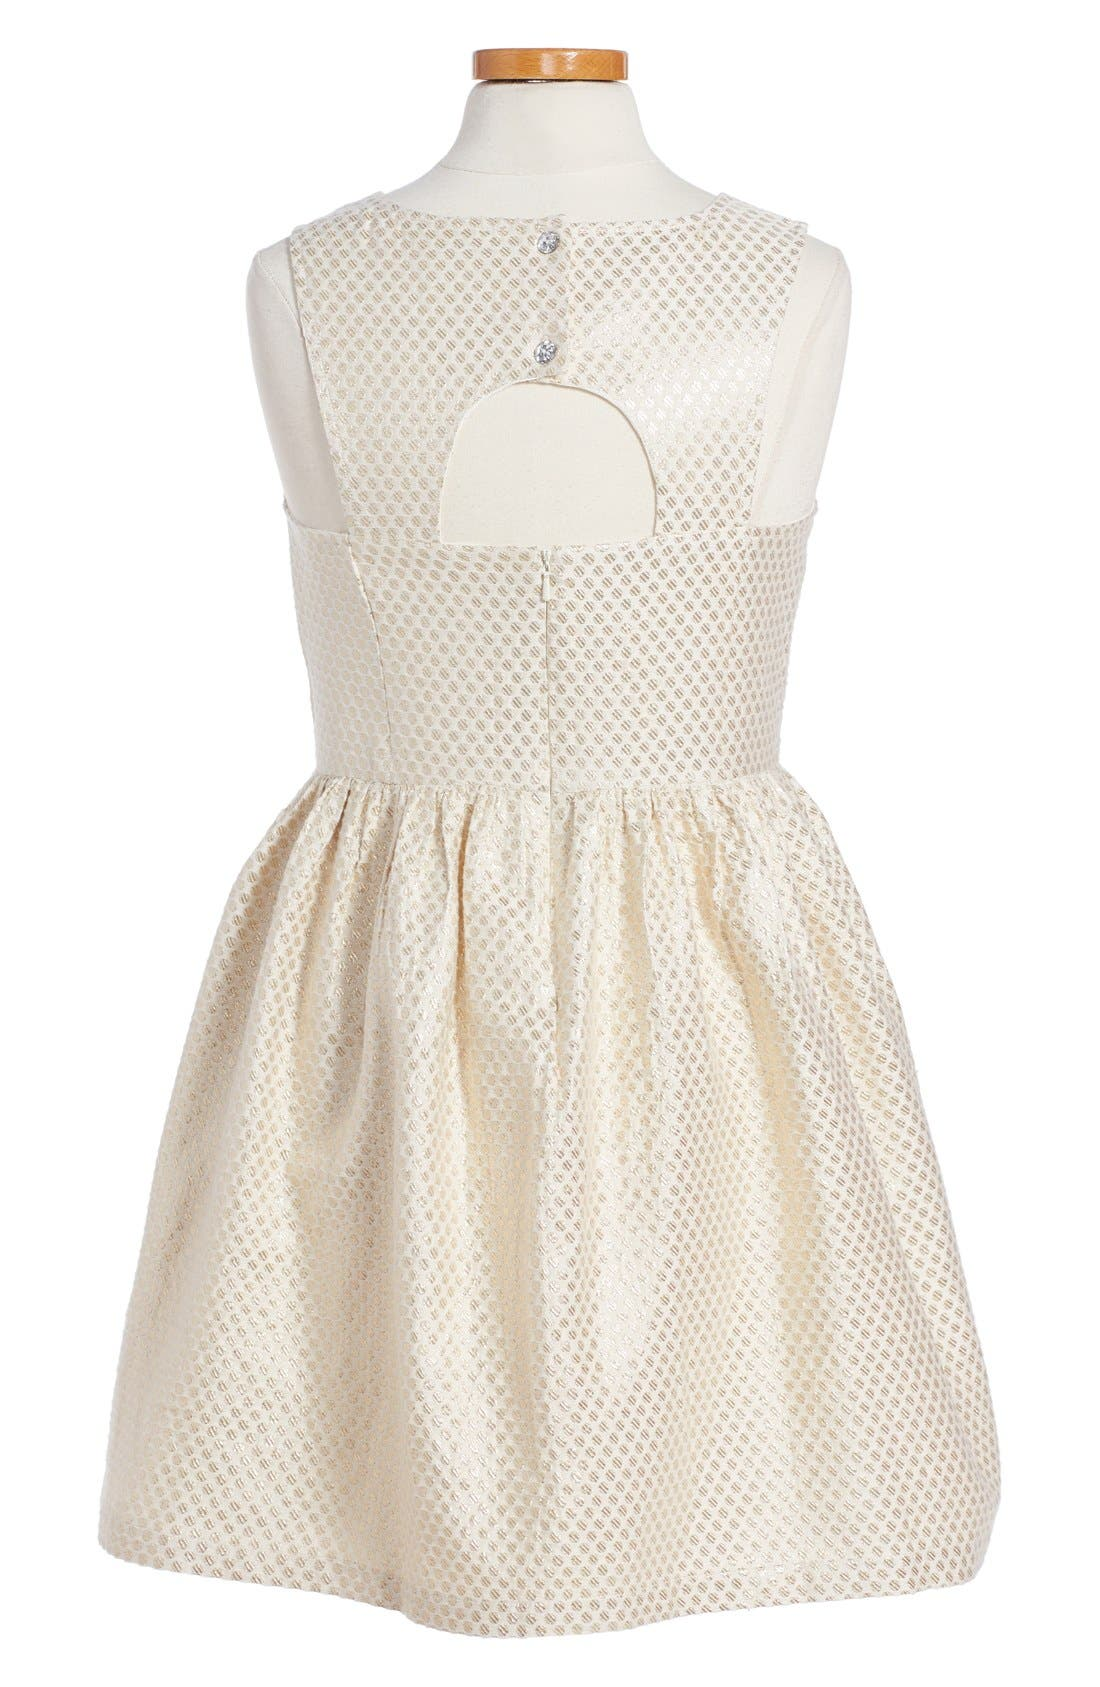 'Sophie' Metallic Dot Dress,                             Alternate thumbnail 2, color,                             Ivory Vanilla-Gold Dot